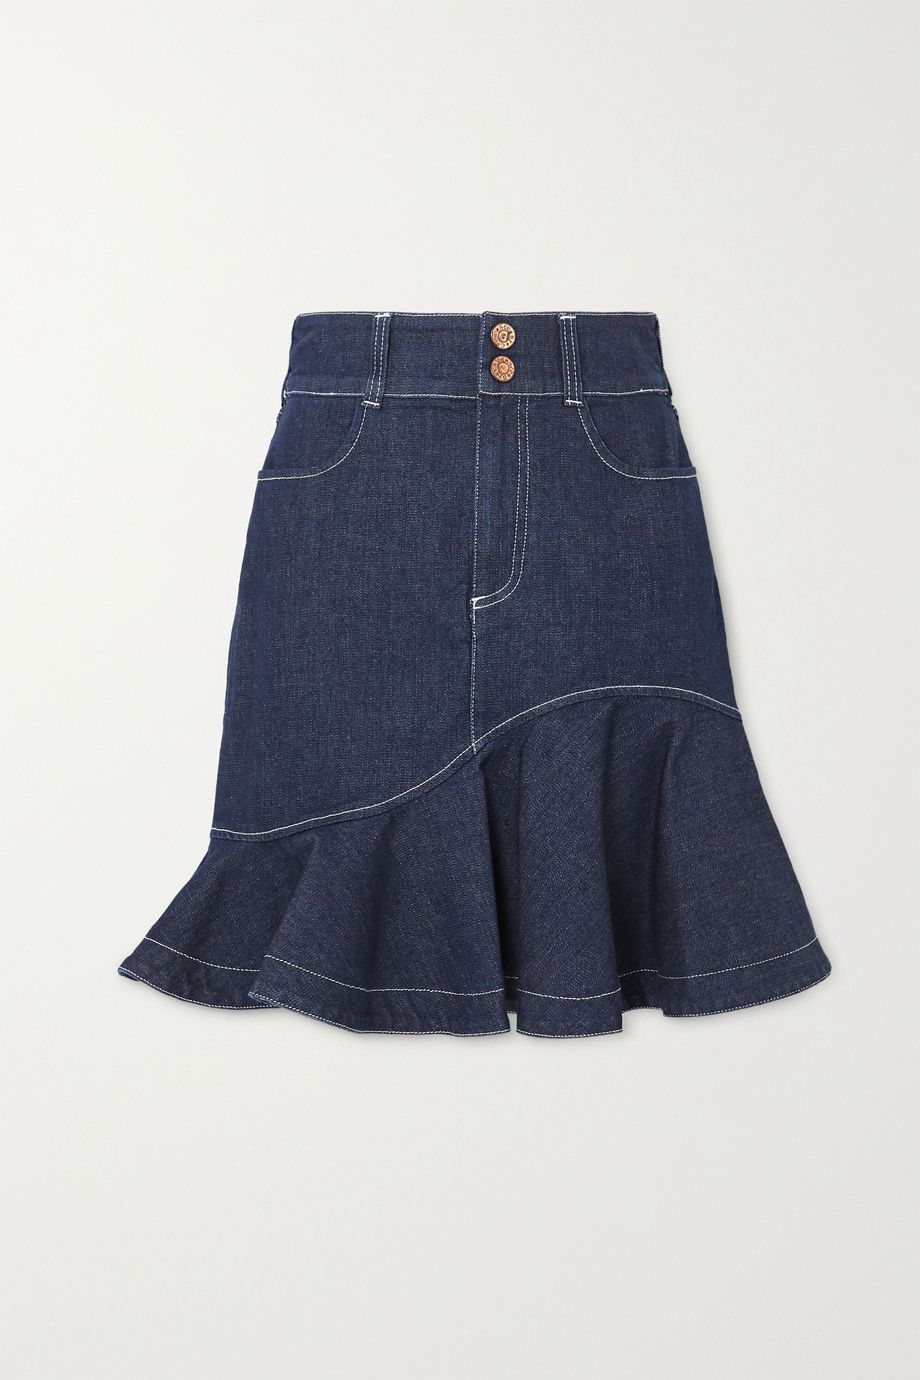 See By Chloé Ruffled denim skirt